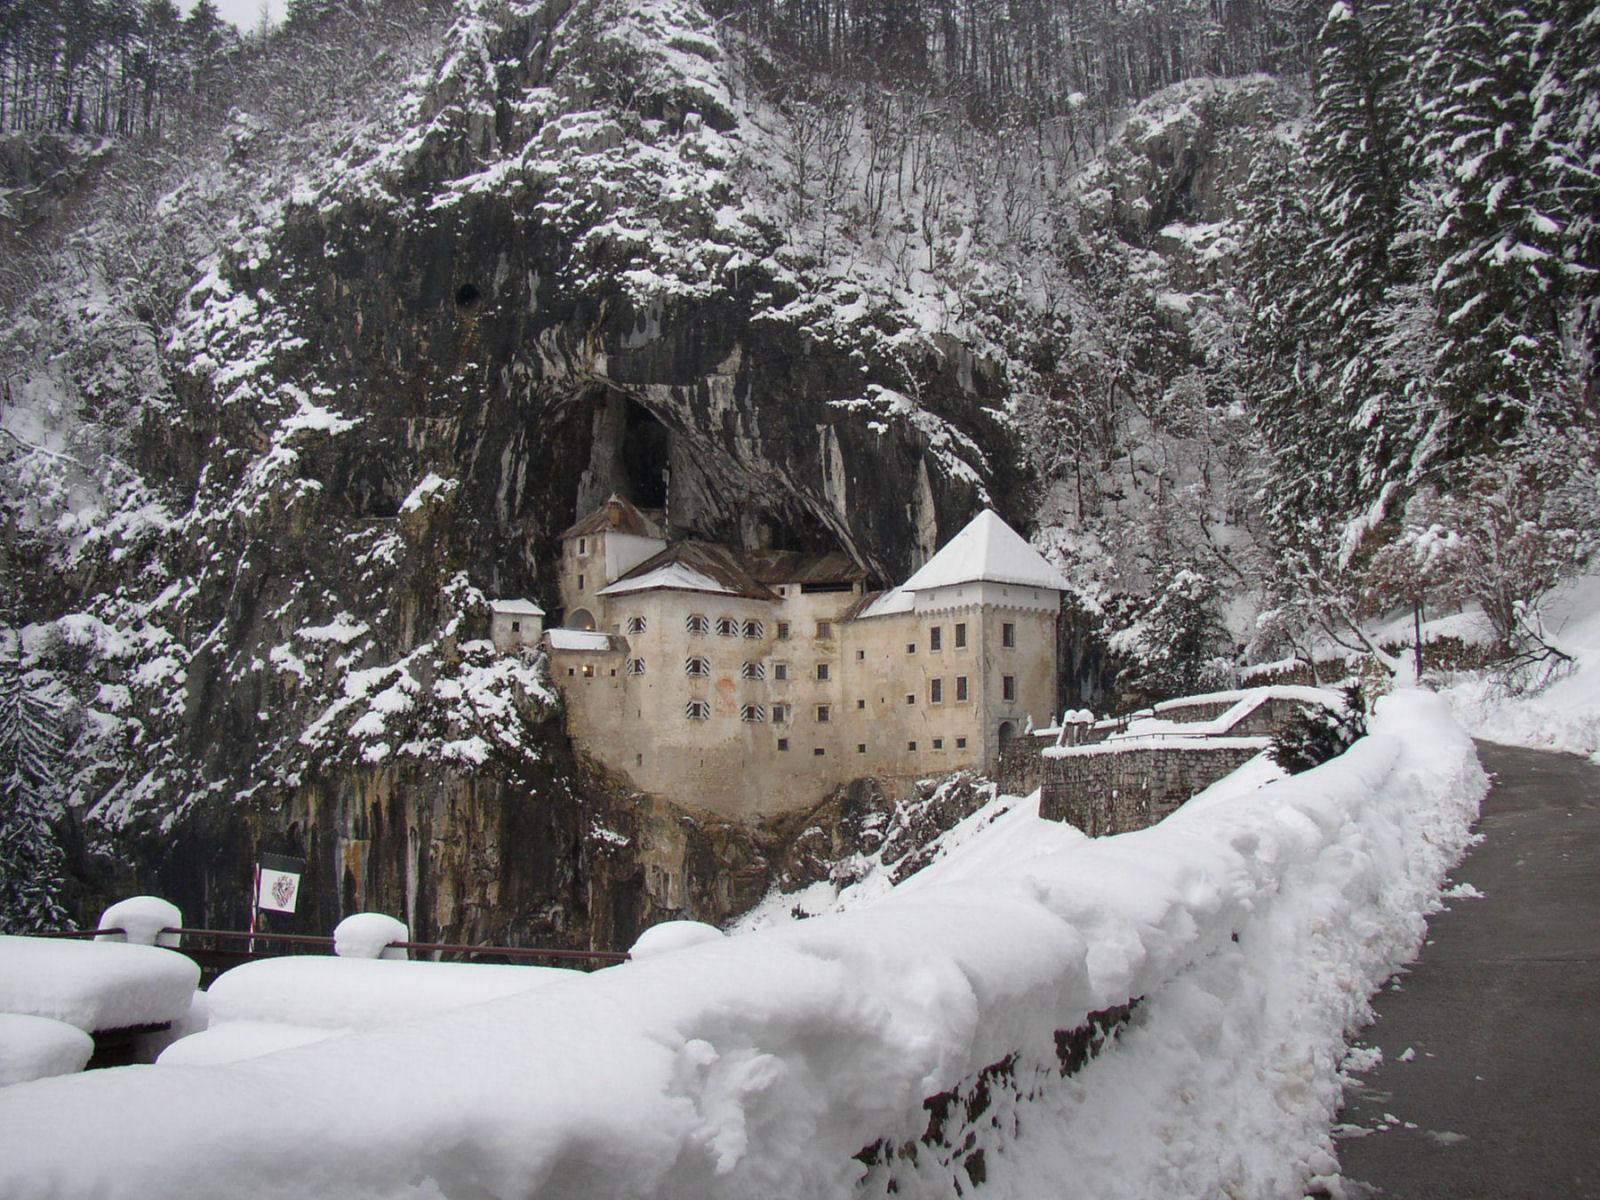 predjama-castle-slovenia-in-winter-snow